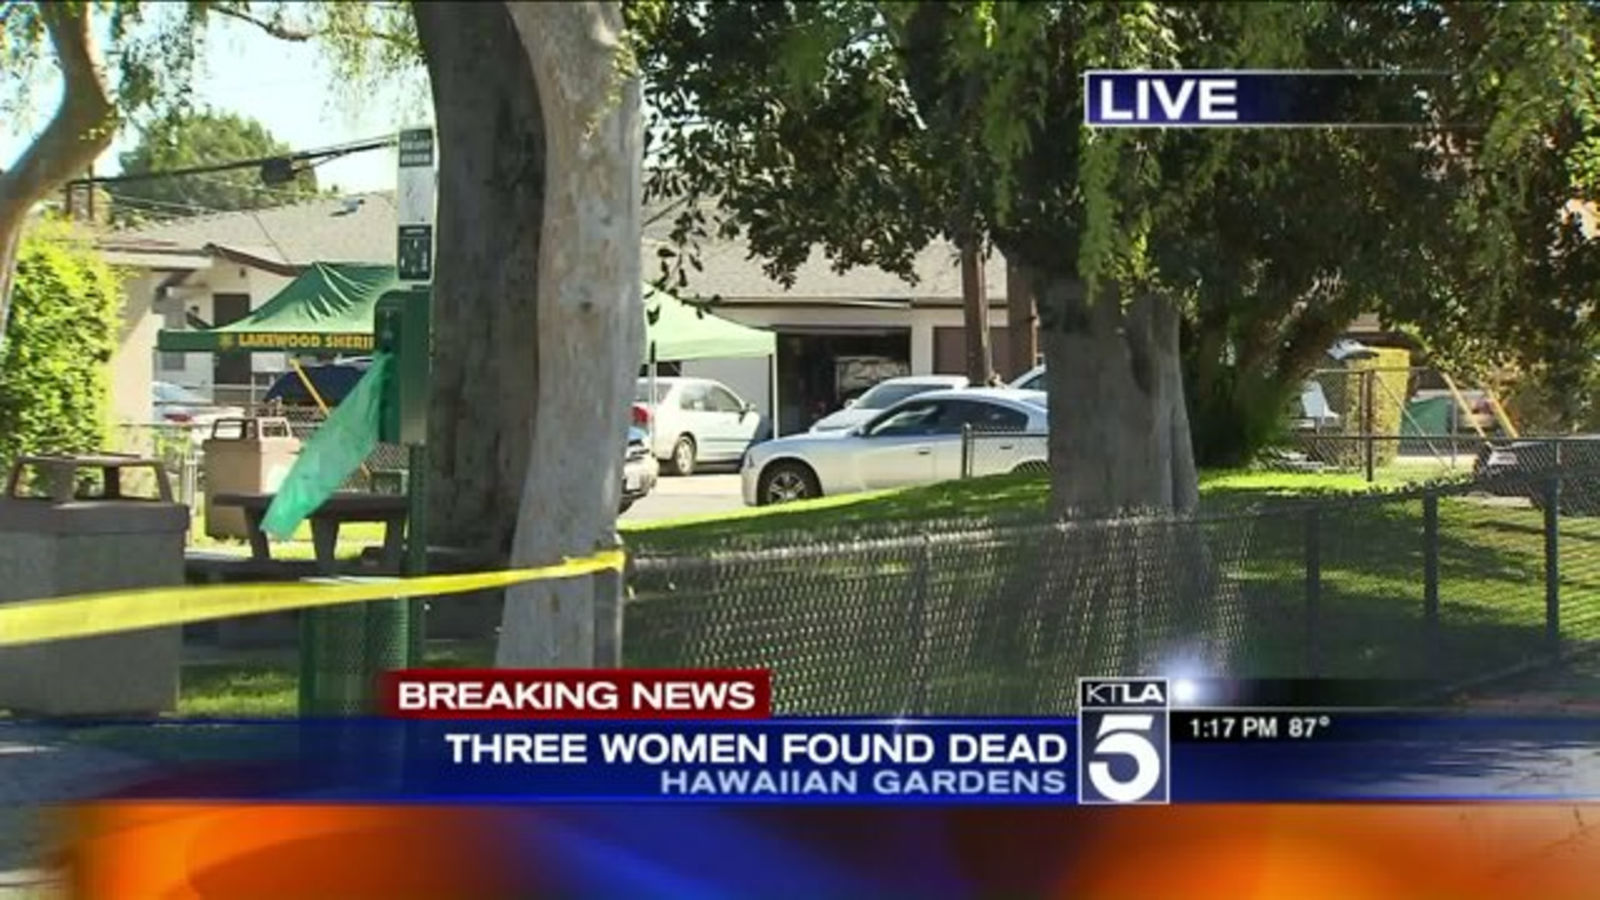 hawaiian gardens single women Results 1 - 30 of 32  search 32 rooms for rent in long beach, california find long beach  apartments, condos, townhomes, single family homes, and much.